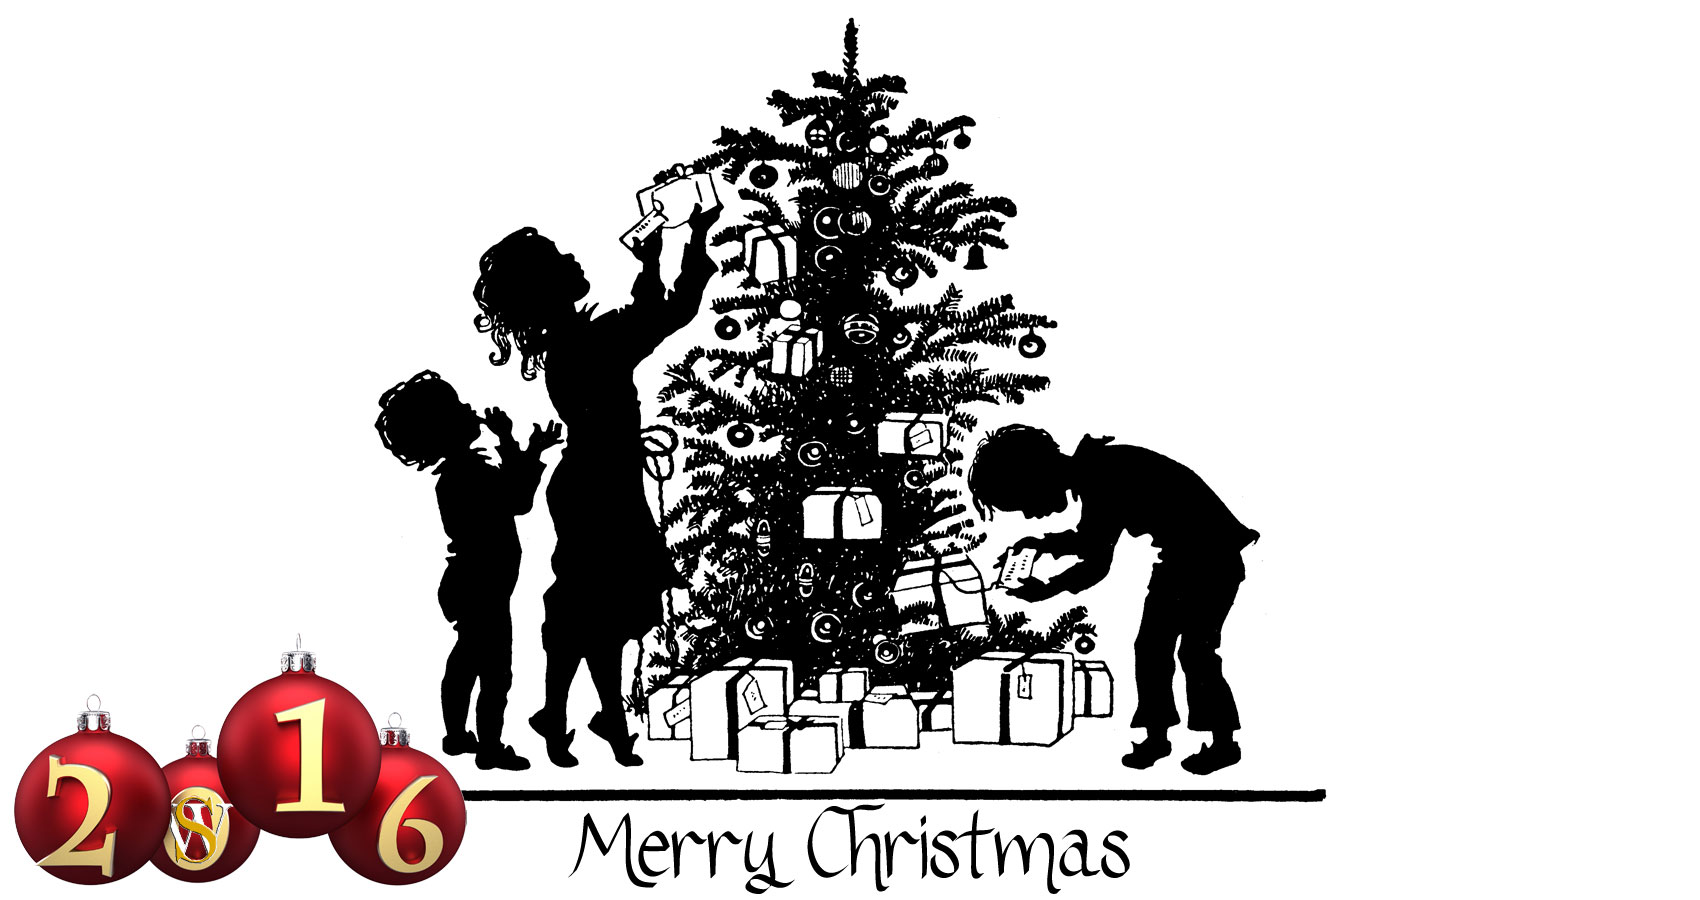 Merry Christmas written by Anne G at Spillwords.com